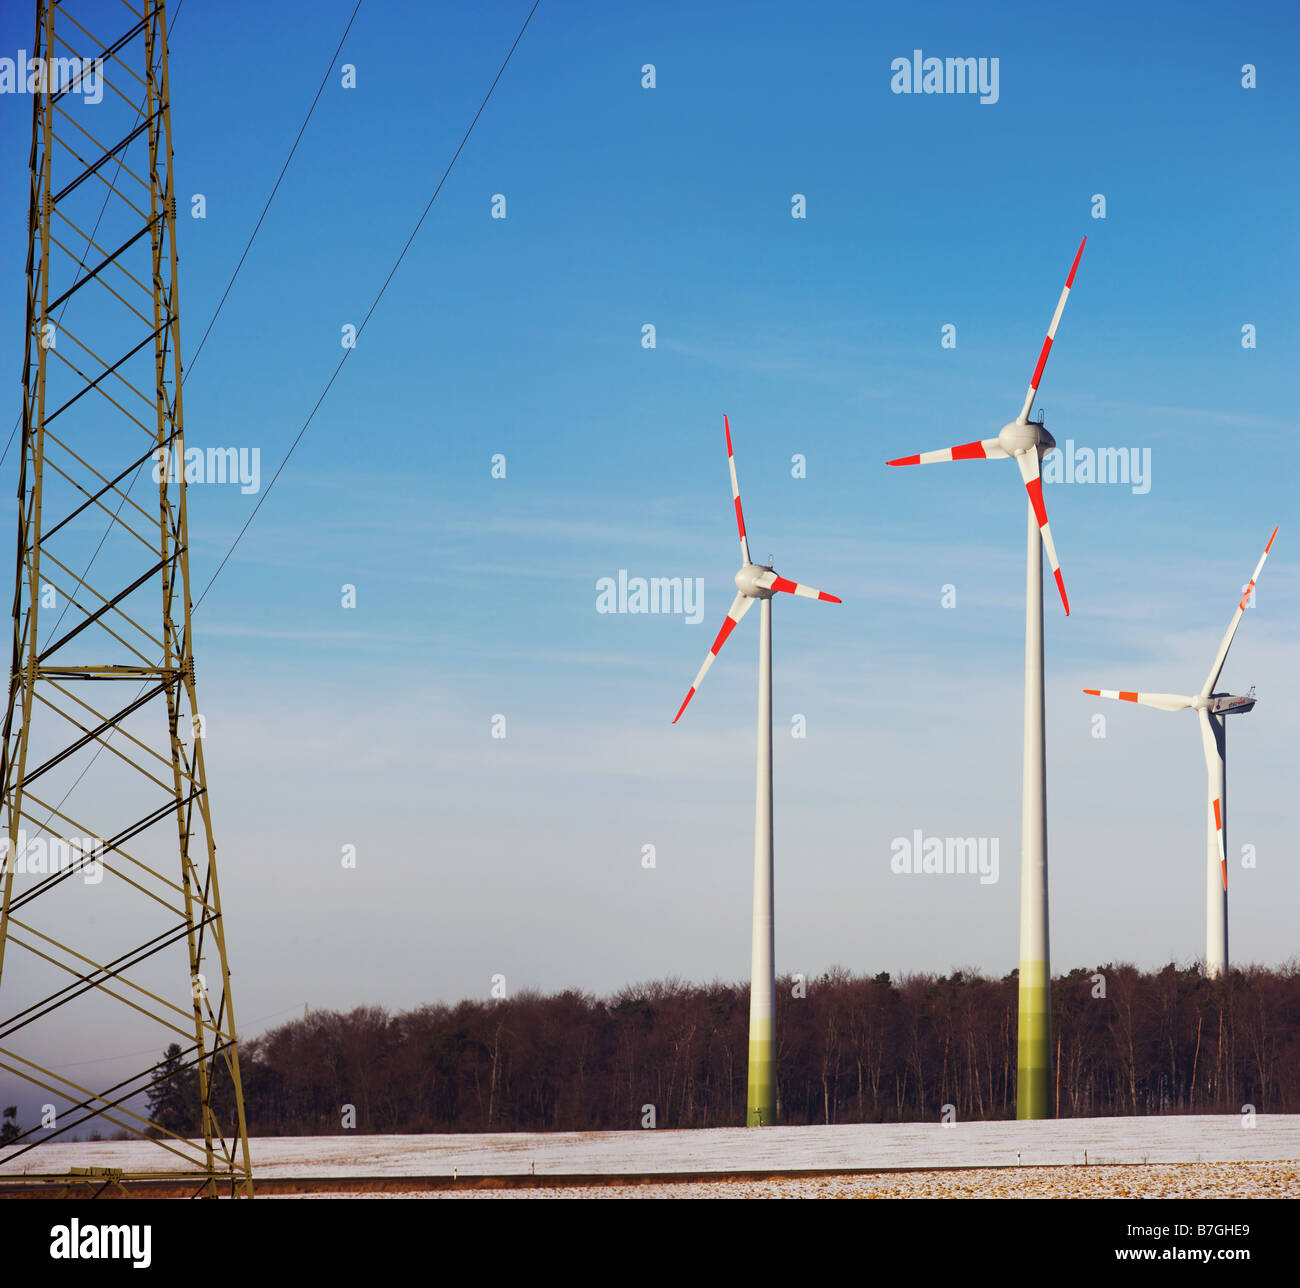 Wind energy facility with power pole - Stock Image